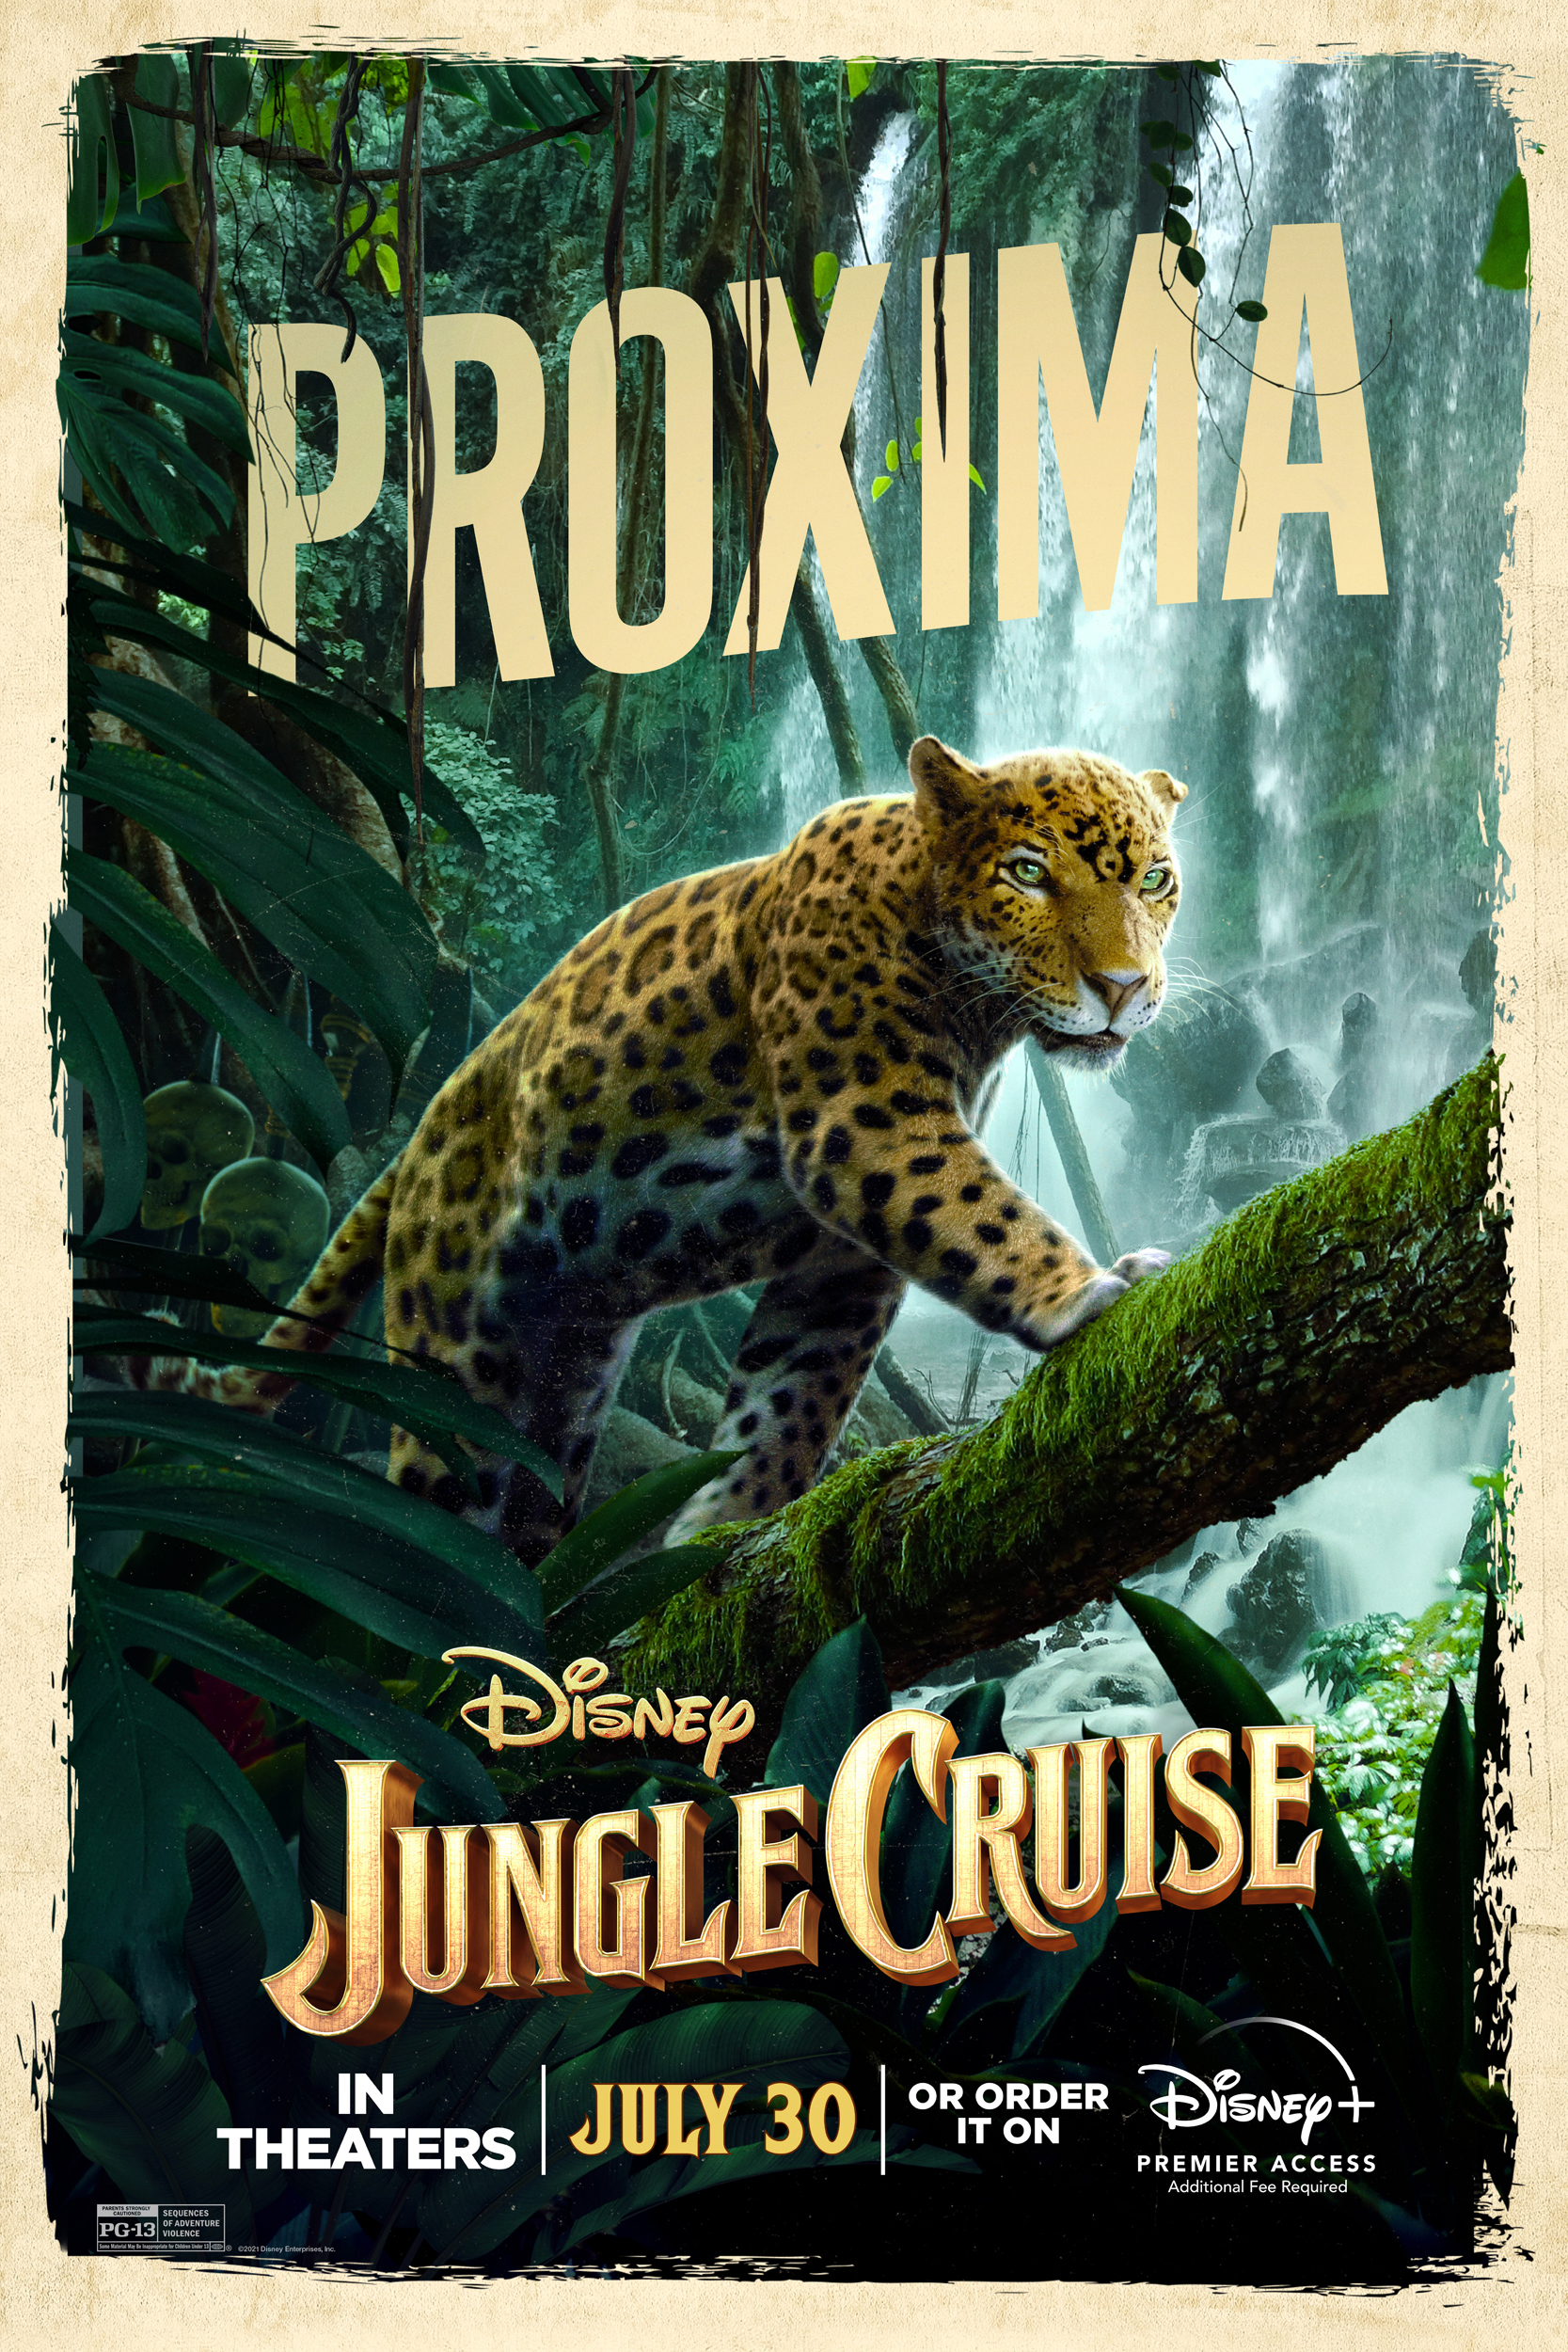 Disney's 'Jungle Cruise' Stars Present Dueling Trailers to Celebrate Countdown to Release - Image 1